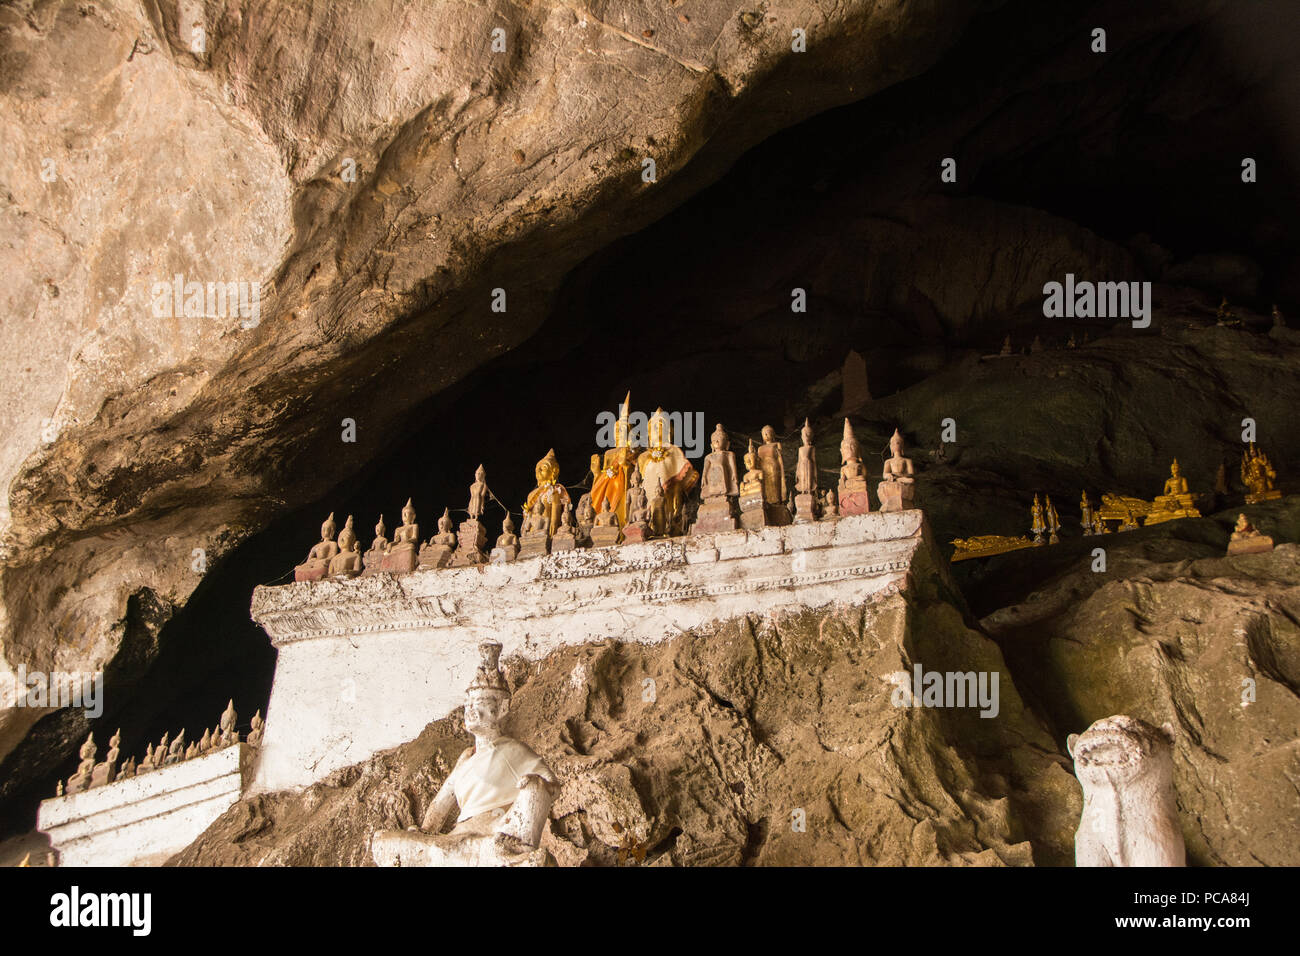 Array of golden buddhist statues in Pak Ou Caves close to Luang Prabang, Laos PDR - Stock Image